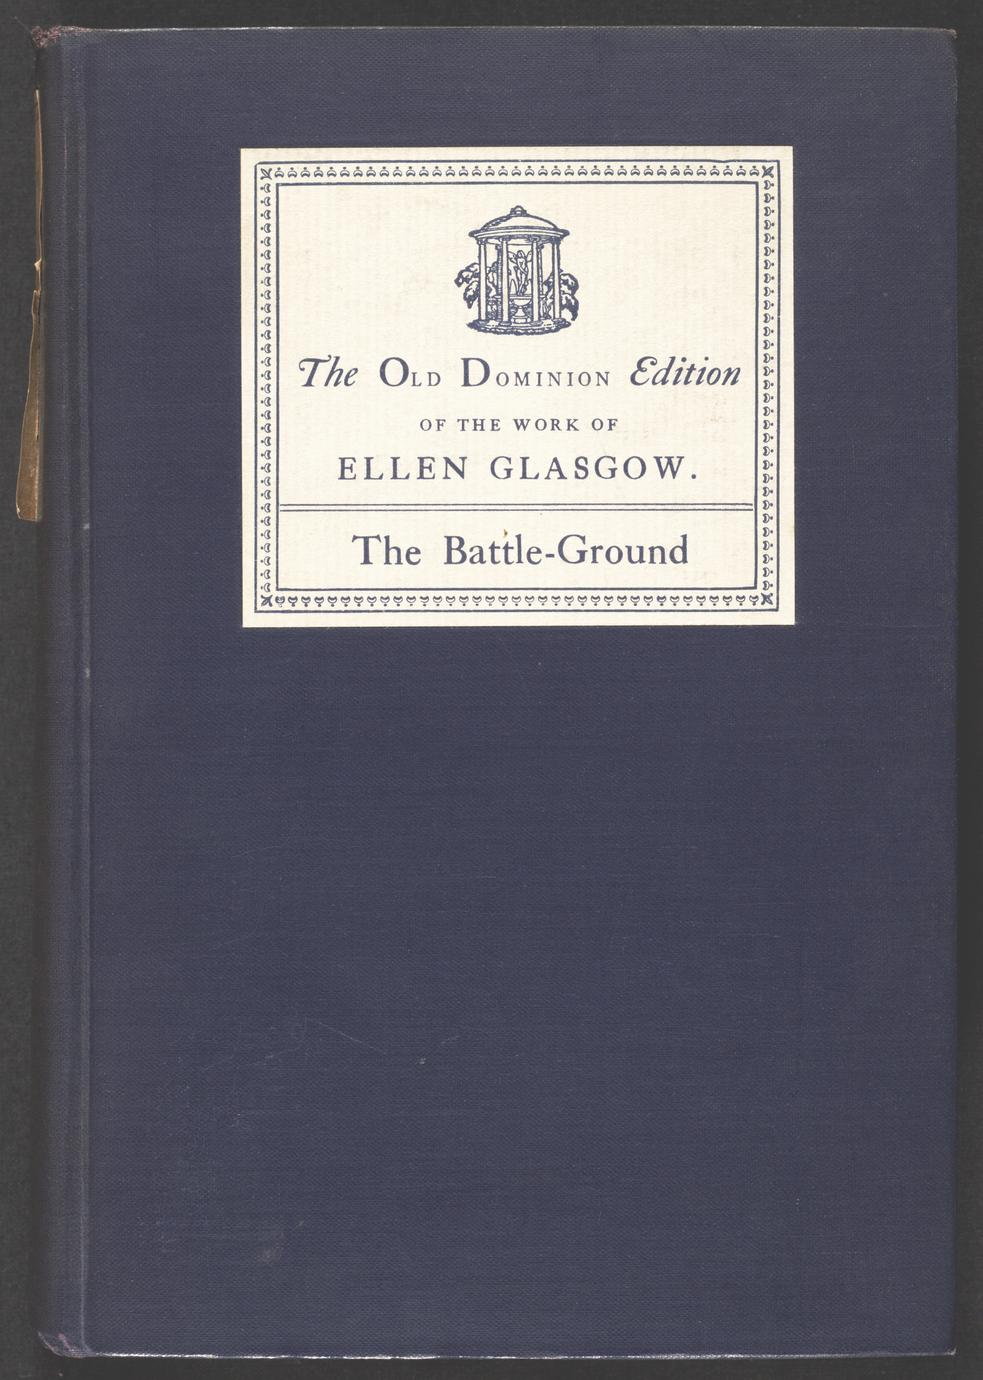 The battle-ground (1 of 3)